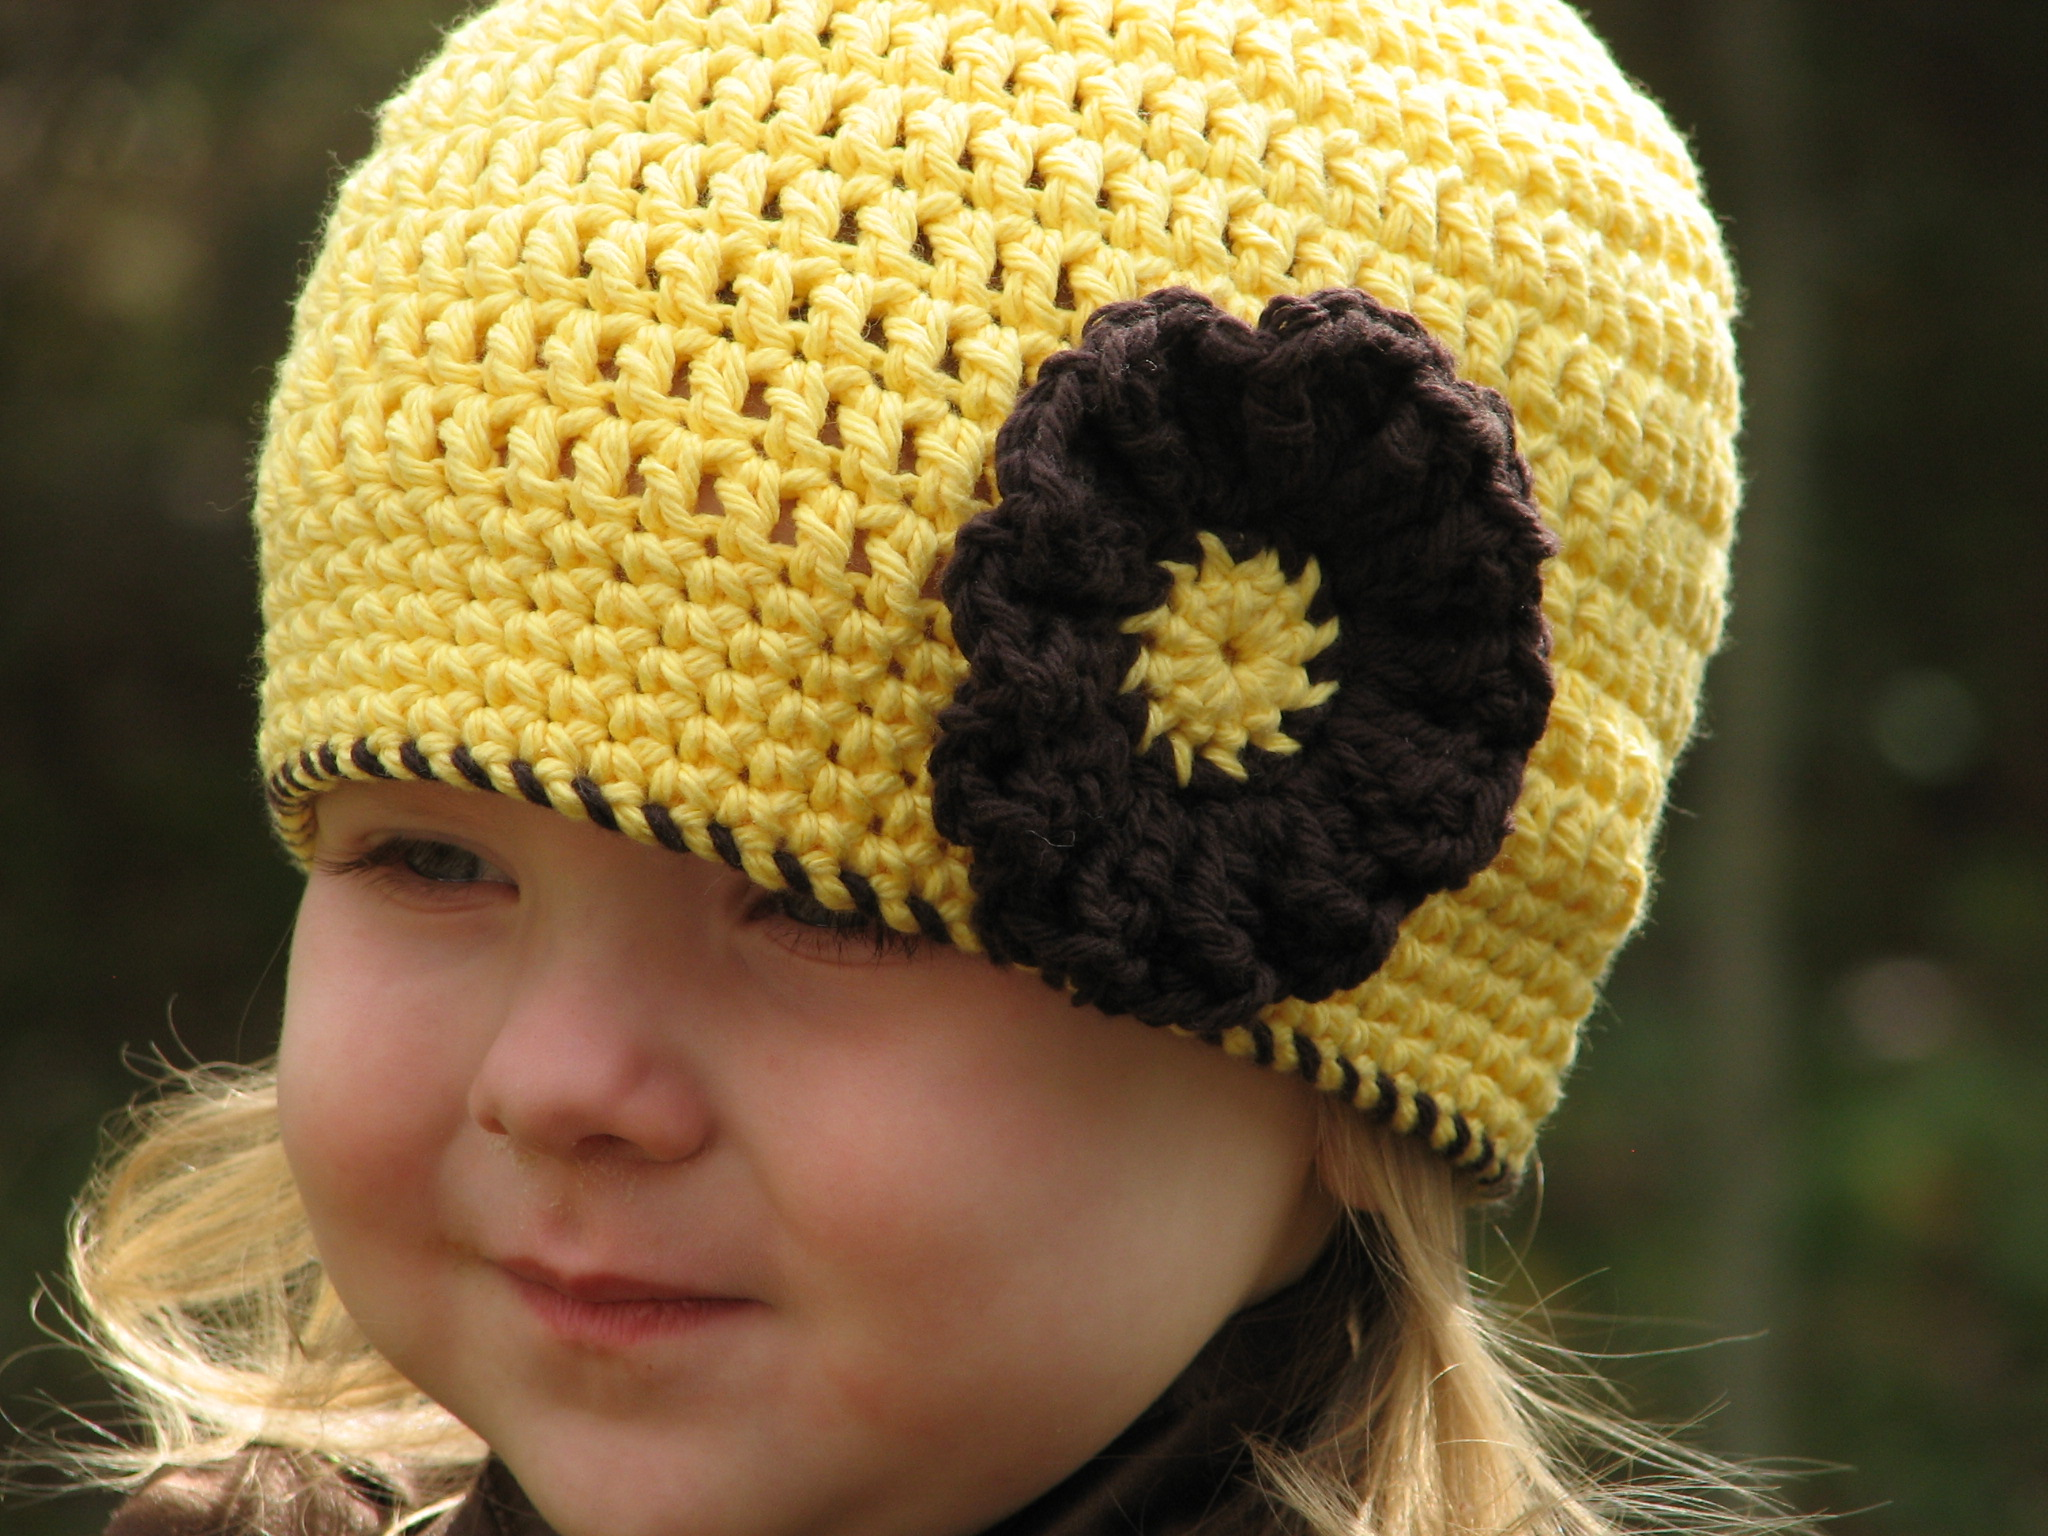 Crochet Hat Patterns Beanie : Sunshine Beanie Crochet Pattern Giveaway - Ambassador ...